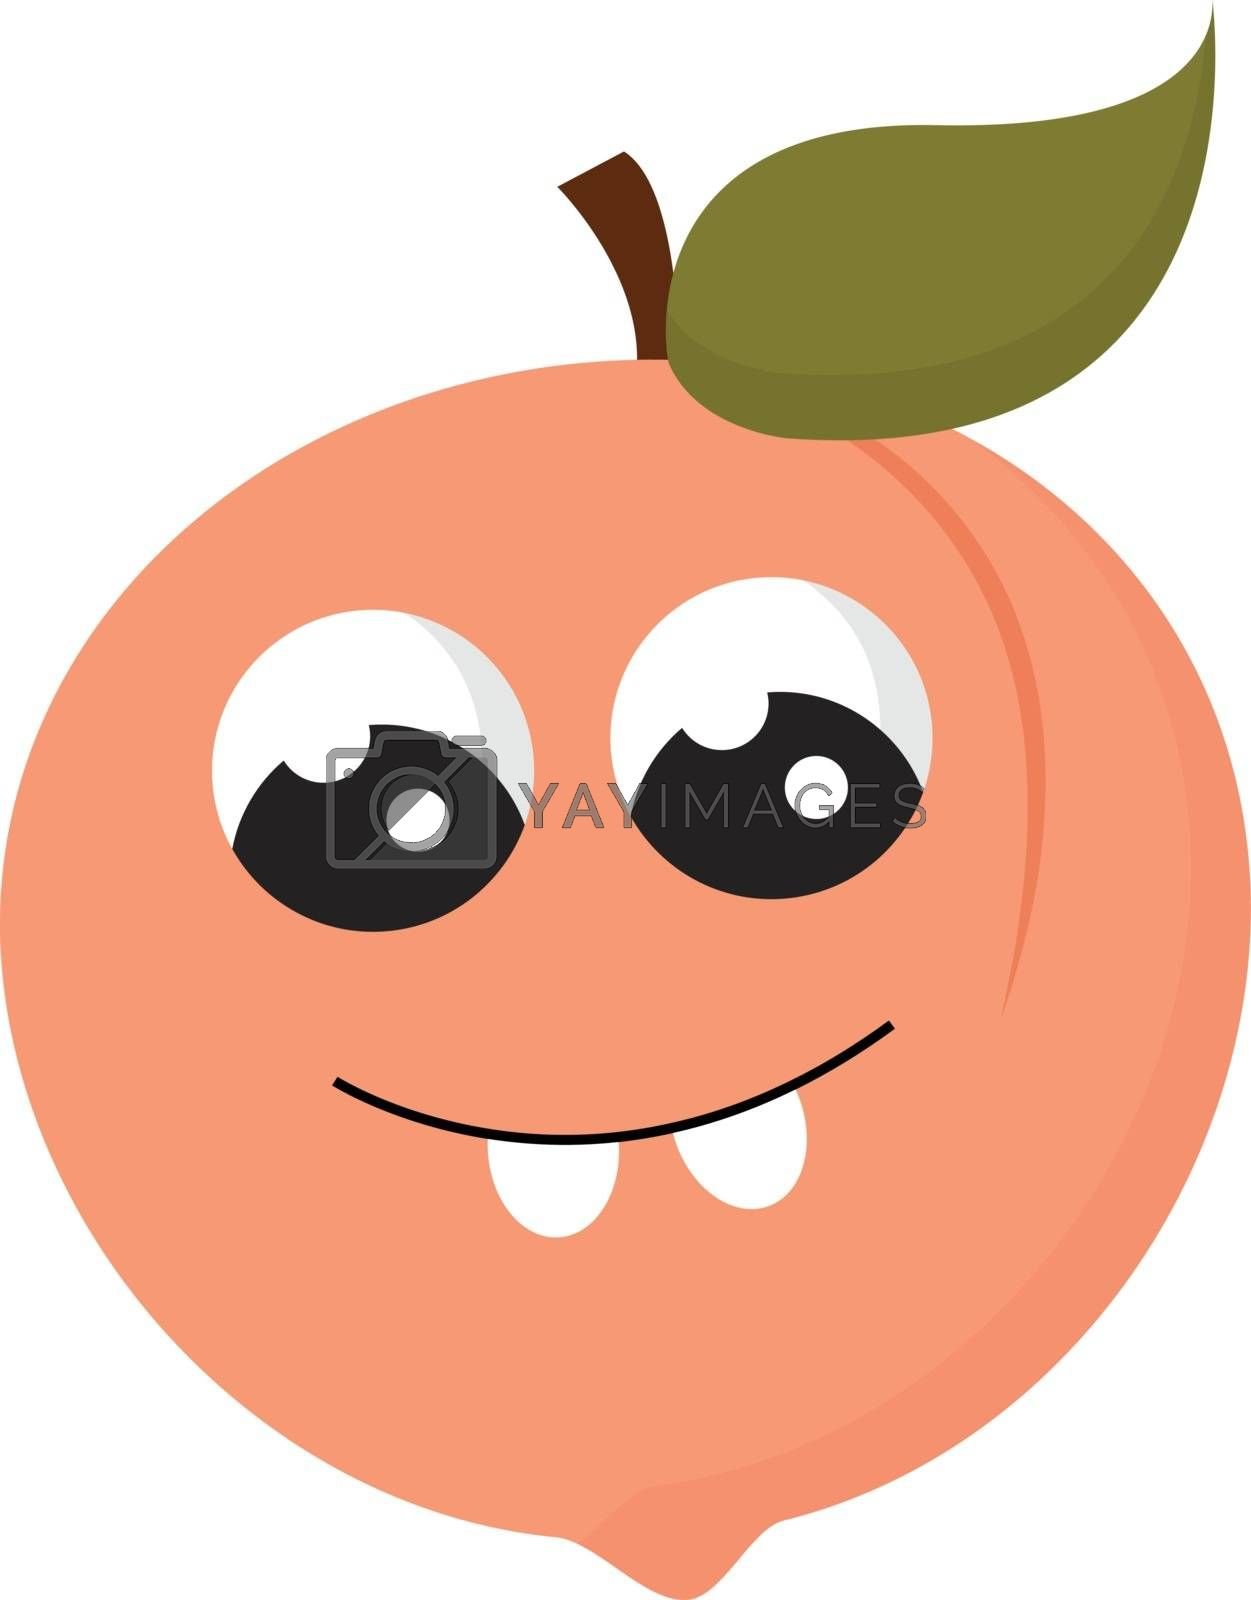 Royalty free image of Emoji of smiling peach fruit vector or color illustration by Morphart